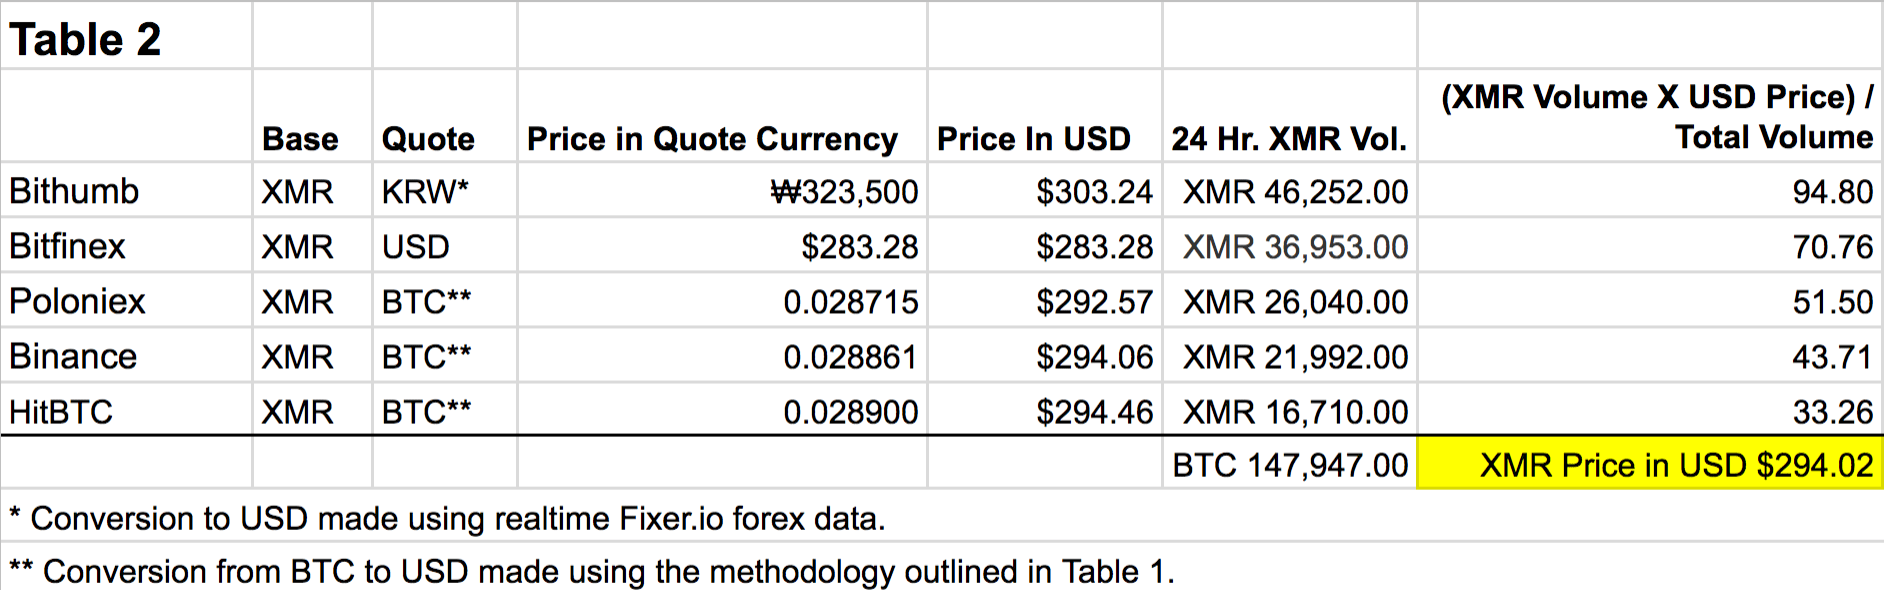 Nomics Methodology Pricing XMR Fiat v2